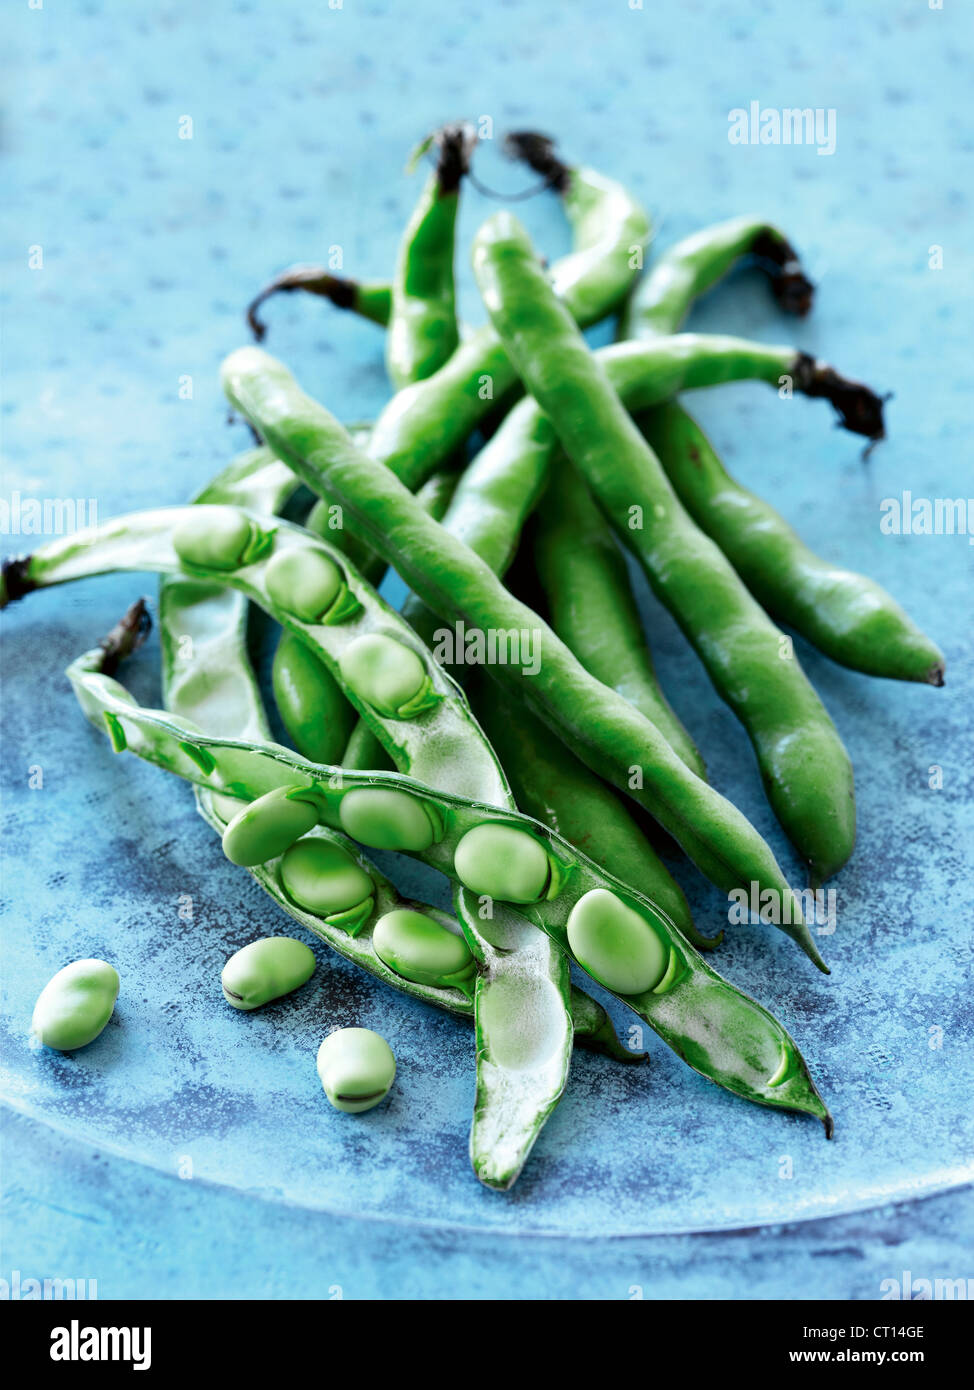 Close up of beans and peas - Stock Image